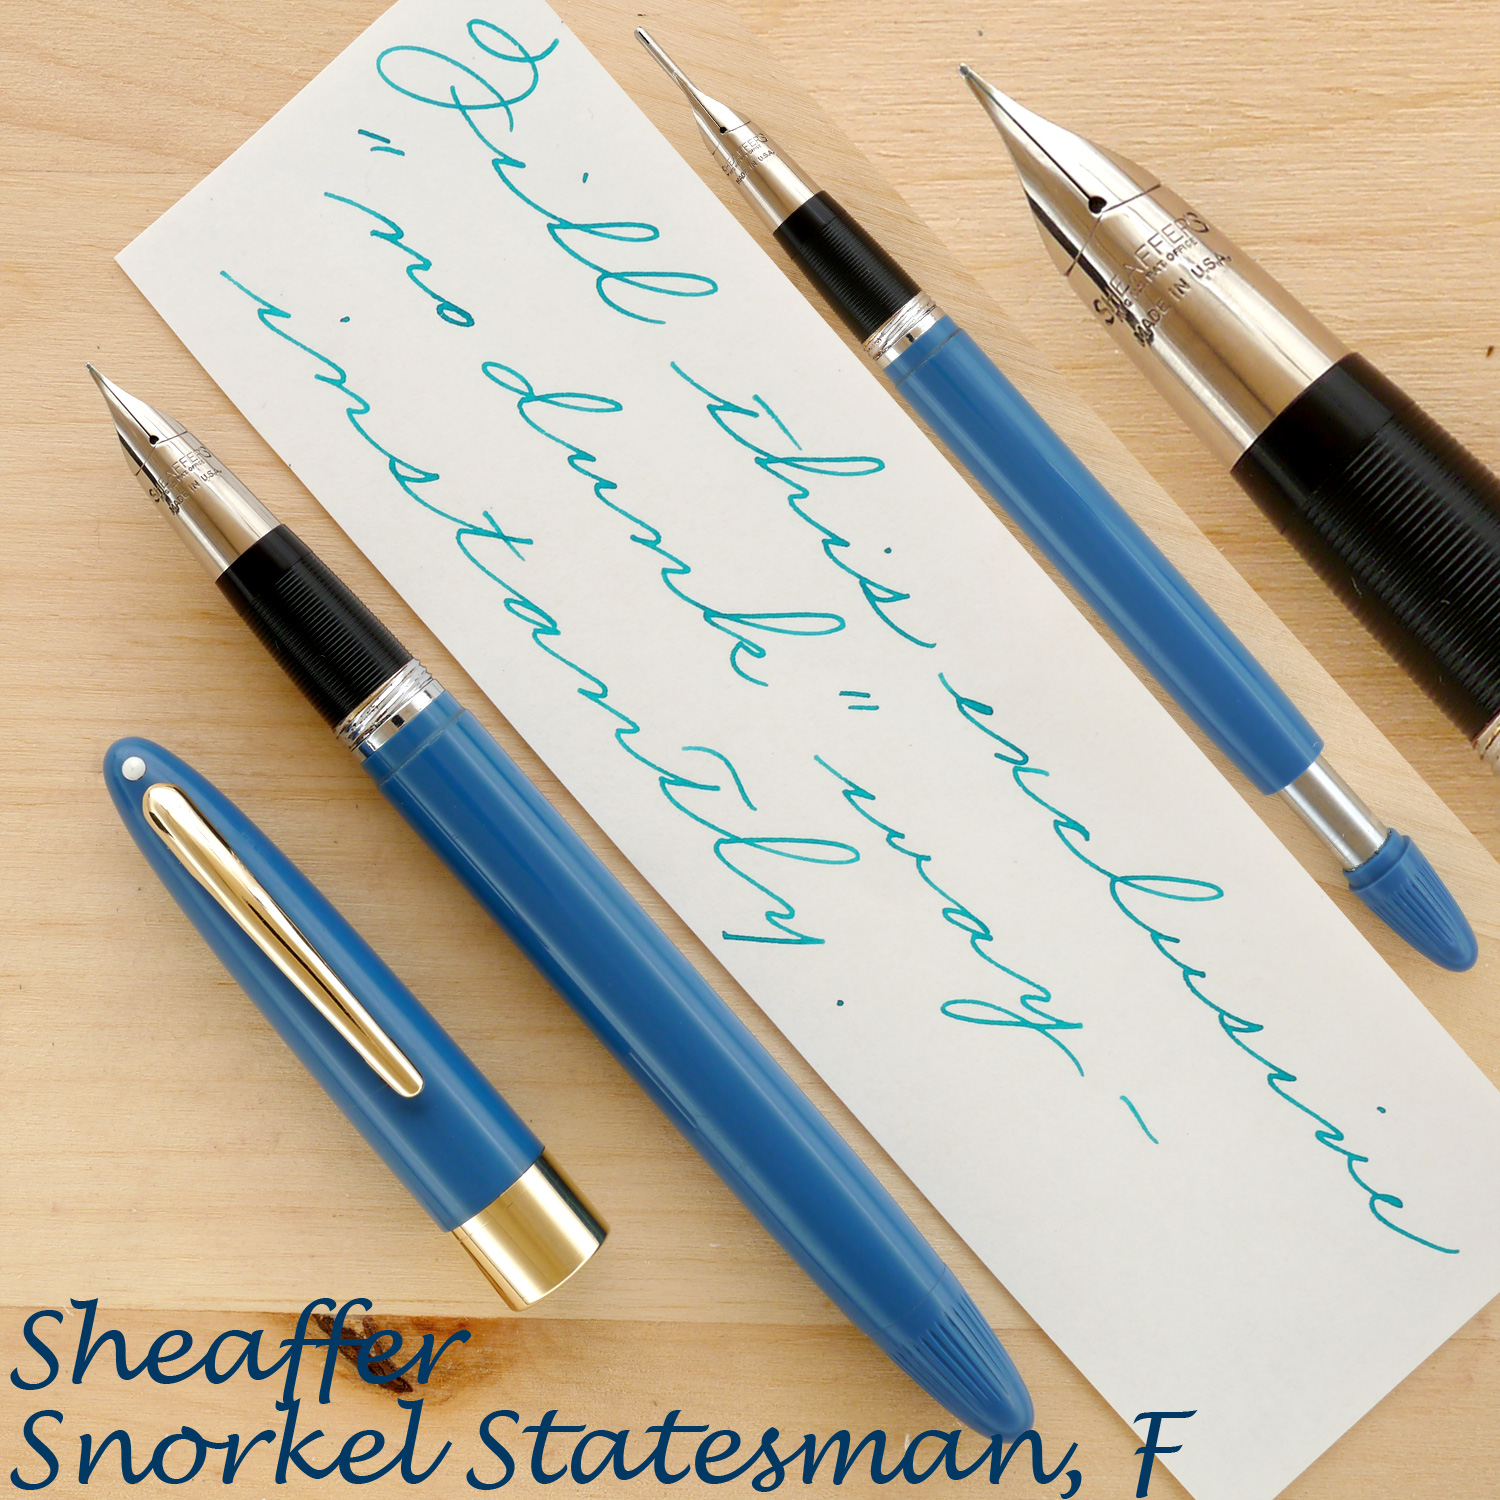 Sheaffer Snorkel Statesman, Pastel Blue, F, uncapped, with the Snorkel tube extended